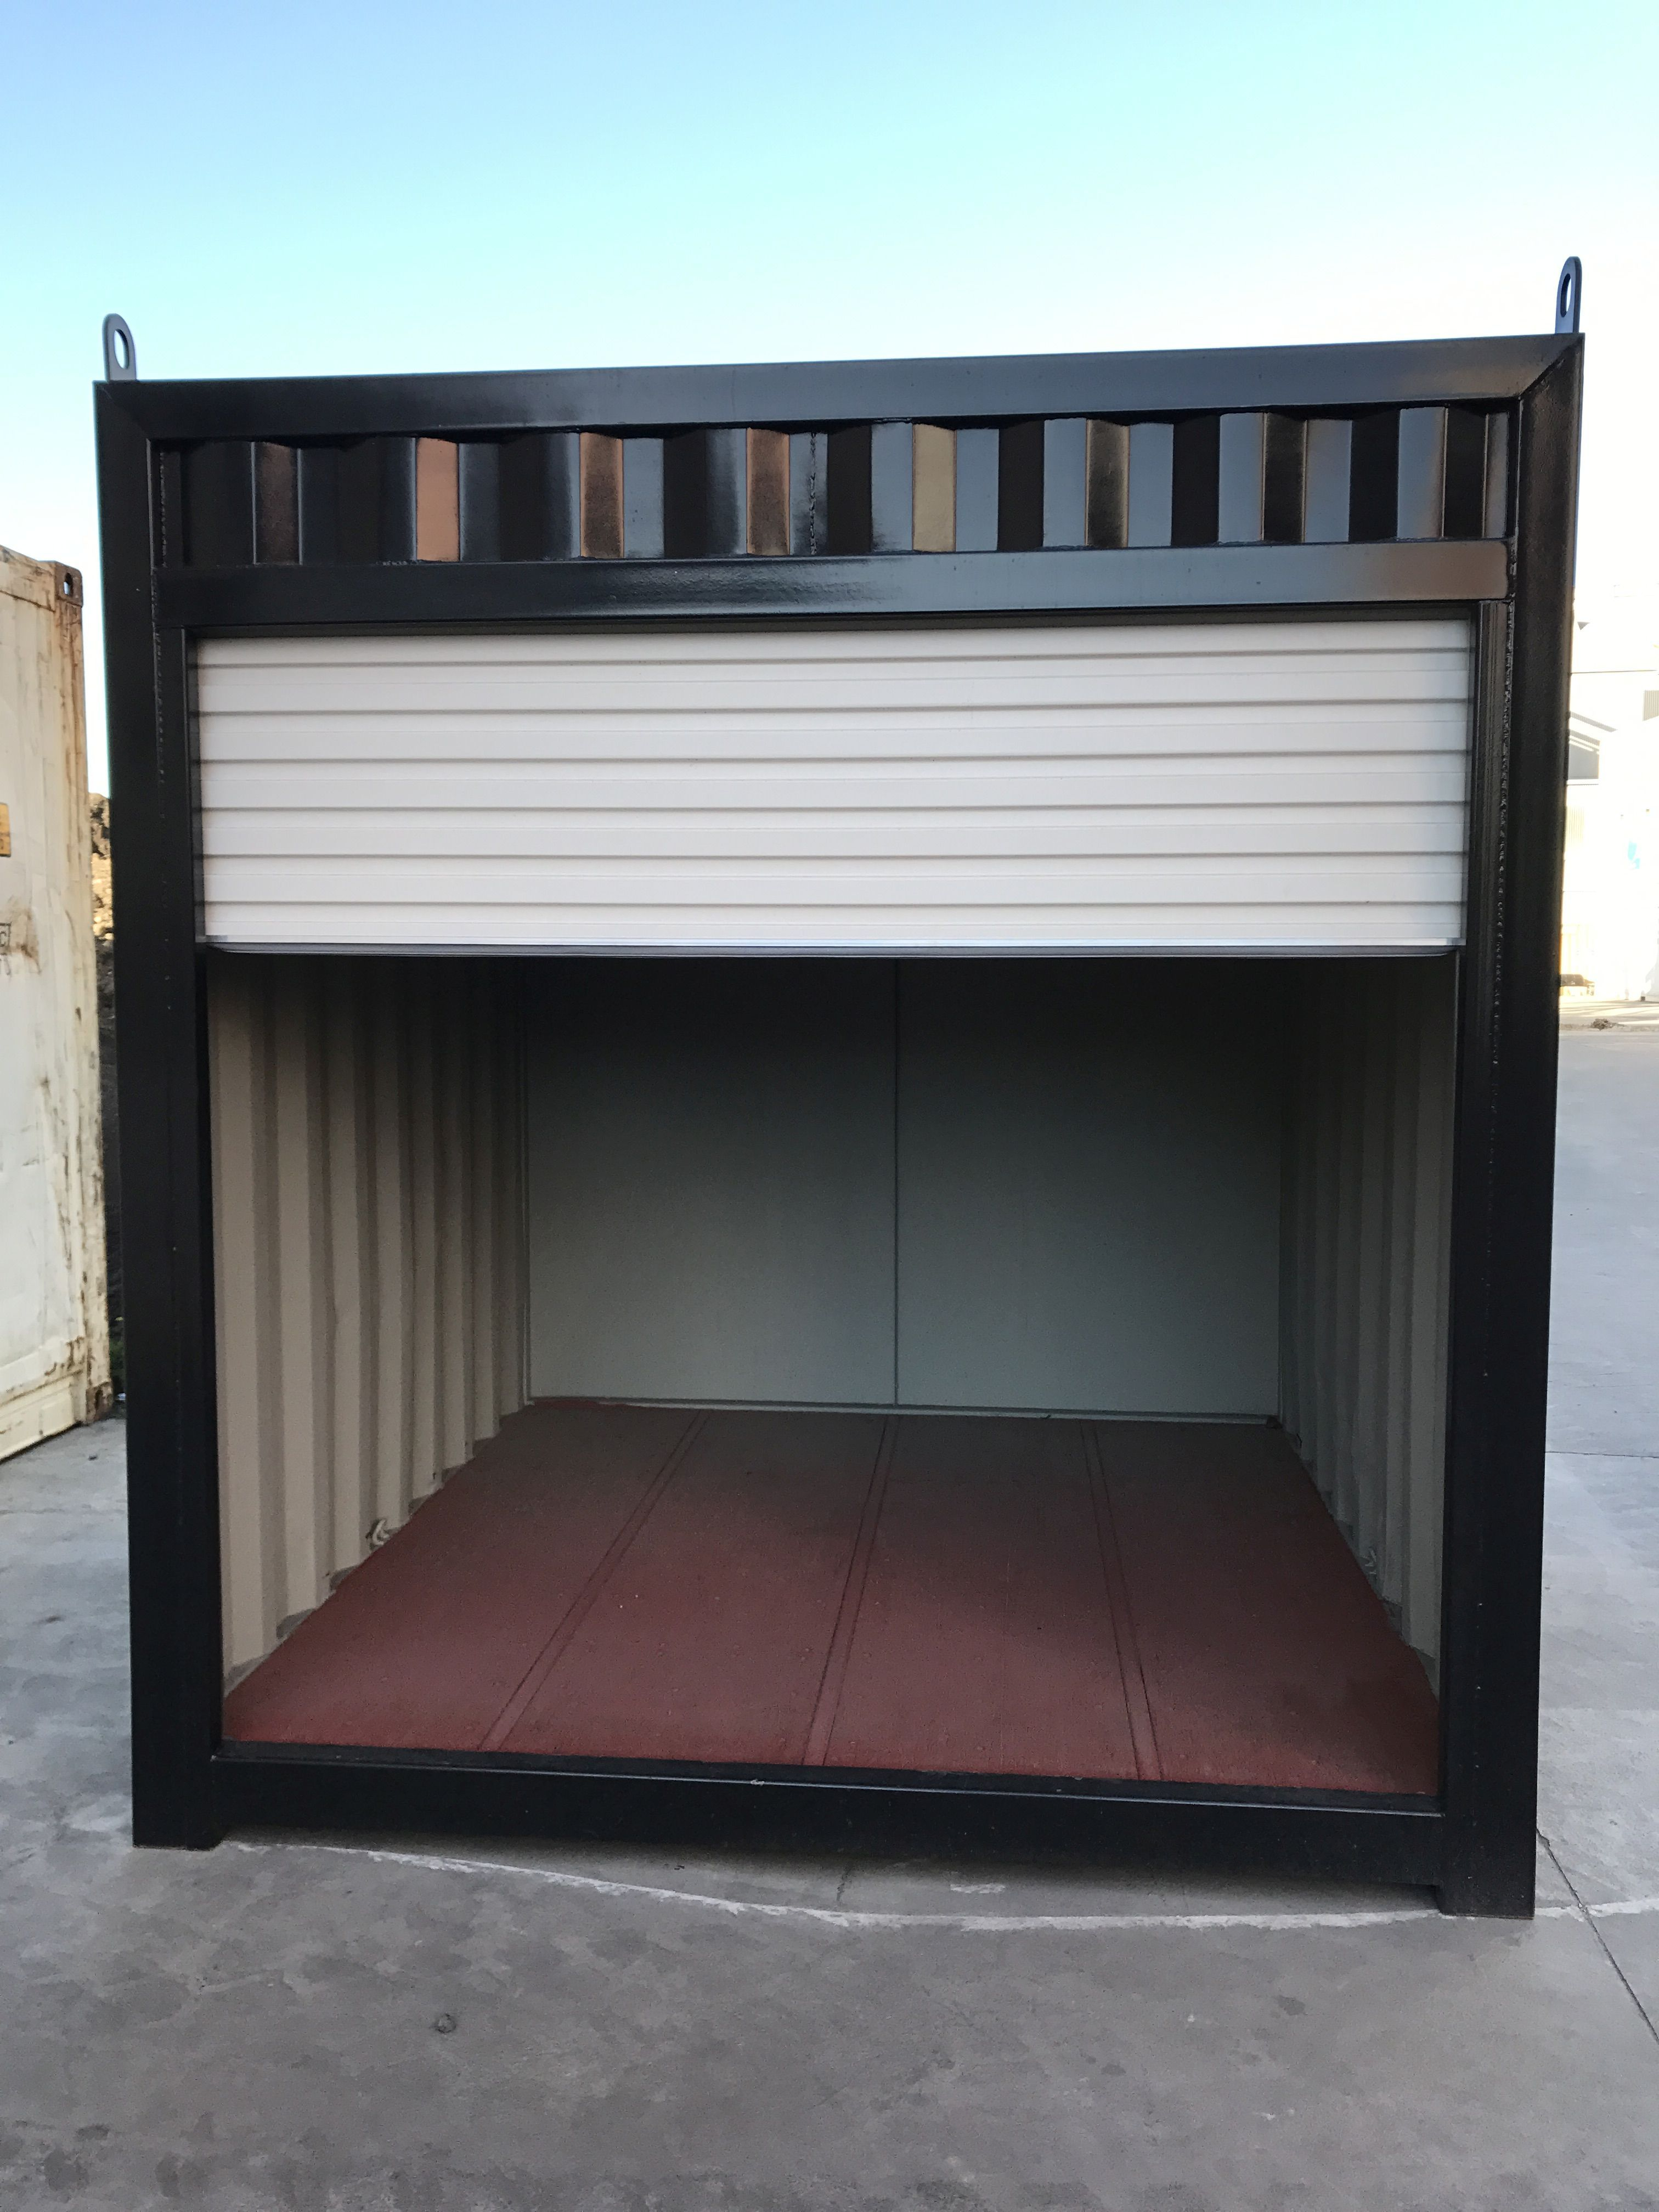 Shipping Containers For Sale In Melbourne Containerspace Shipping Containers For Sale Containers For Sale Shipping Container Buildings